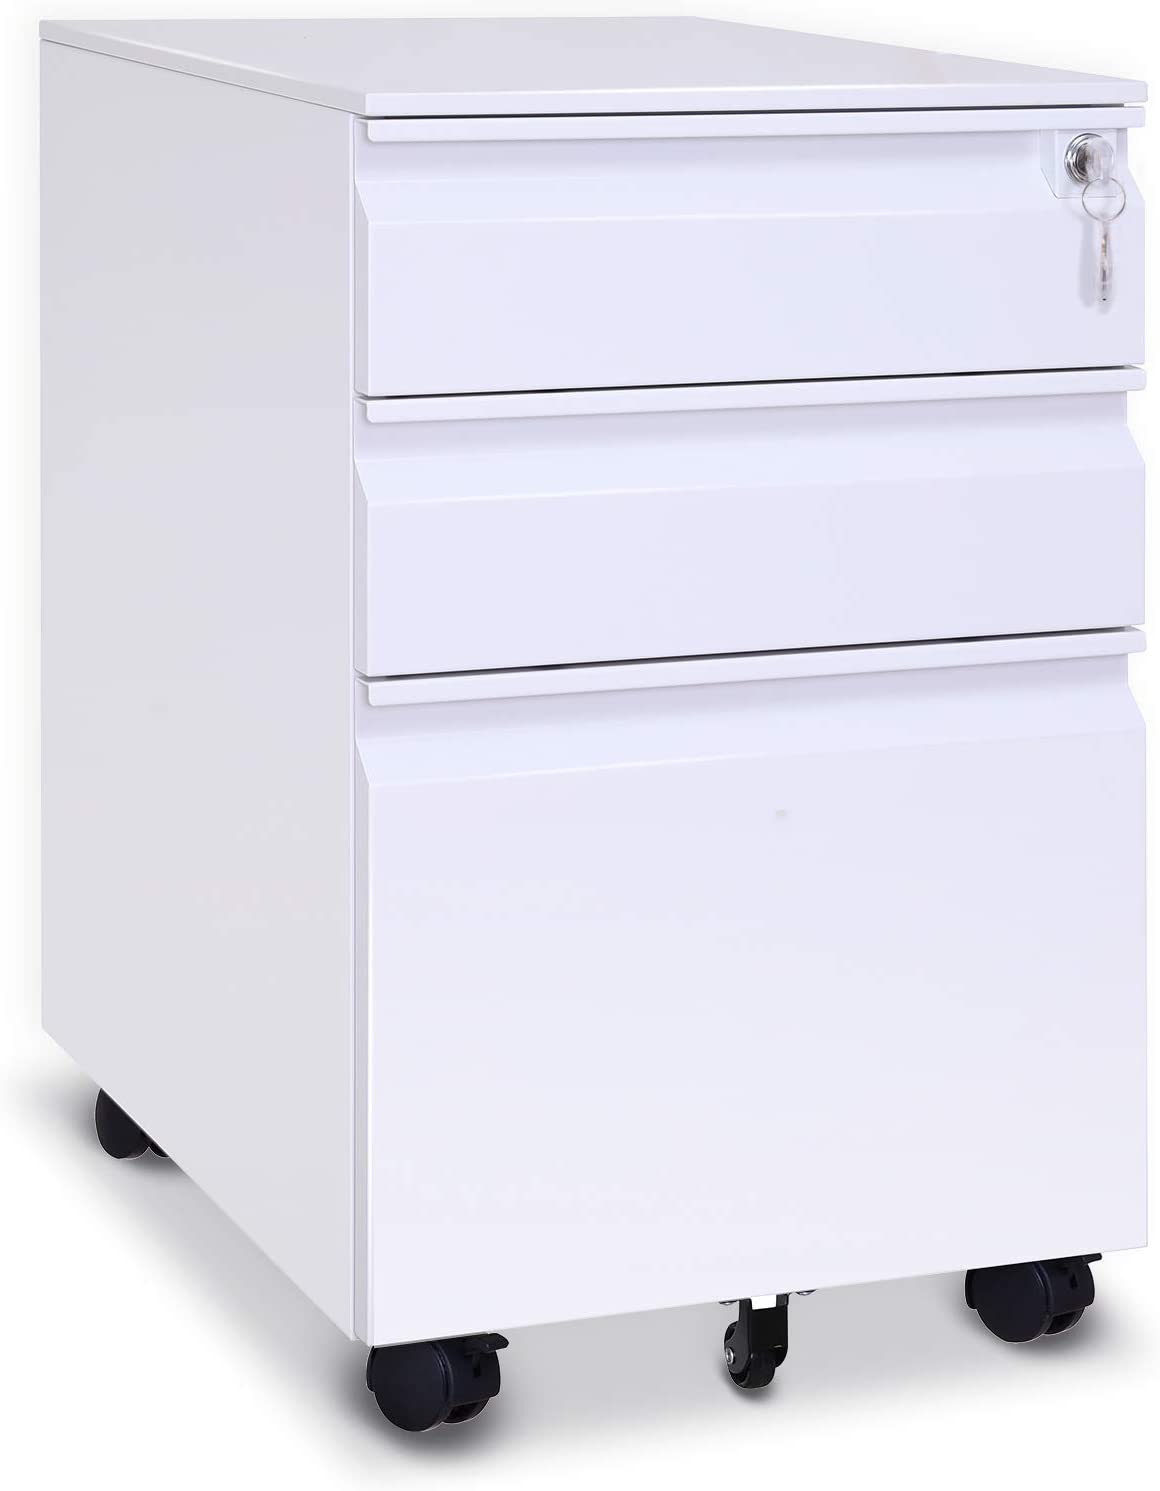 """File Cabinet 3-Drawer 23.6"""" Deep on Wheels Mobile Storage Cabinet for Home and Office with Key Lock and 5 Casters Metal Filing Cabinet for Any Legal and Letter File Size,Fully Assembled (White)"""